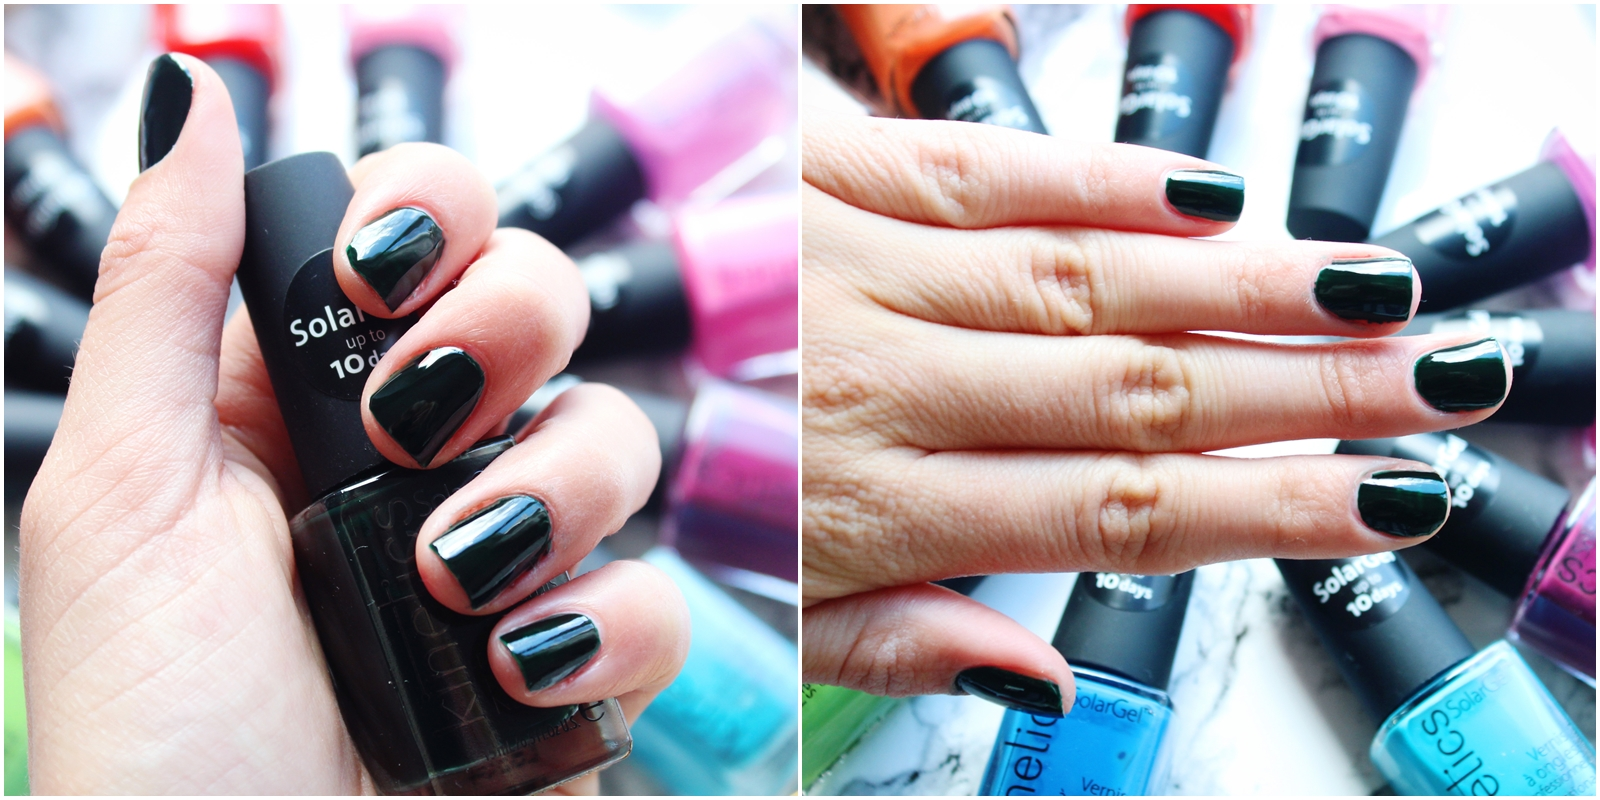 Kinetics RioRio collection review and swatches